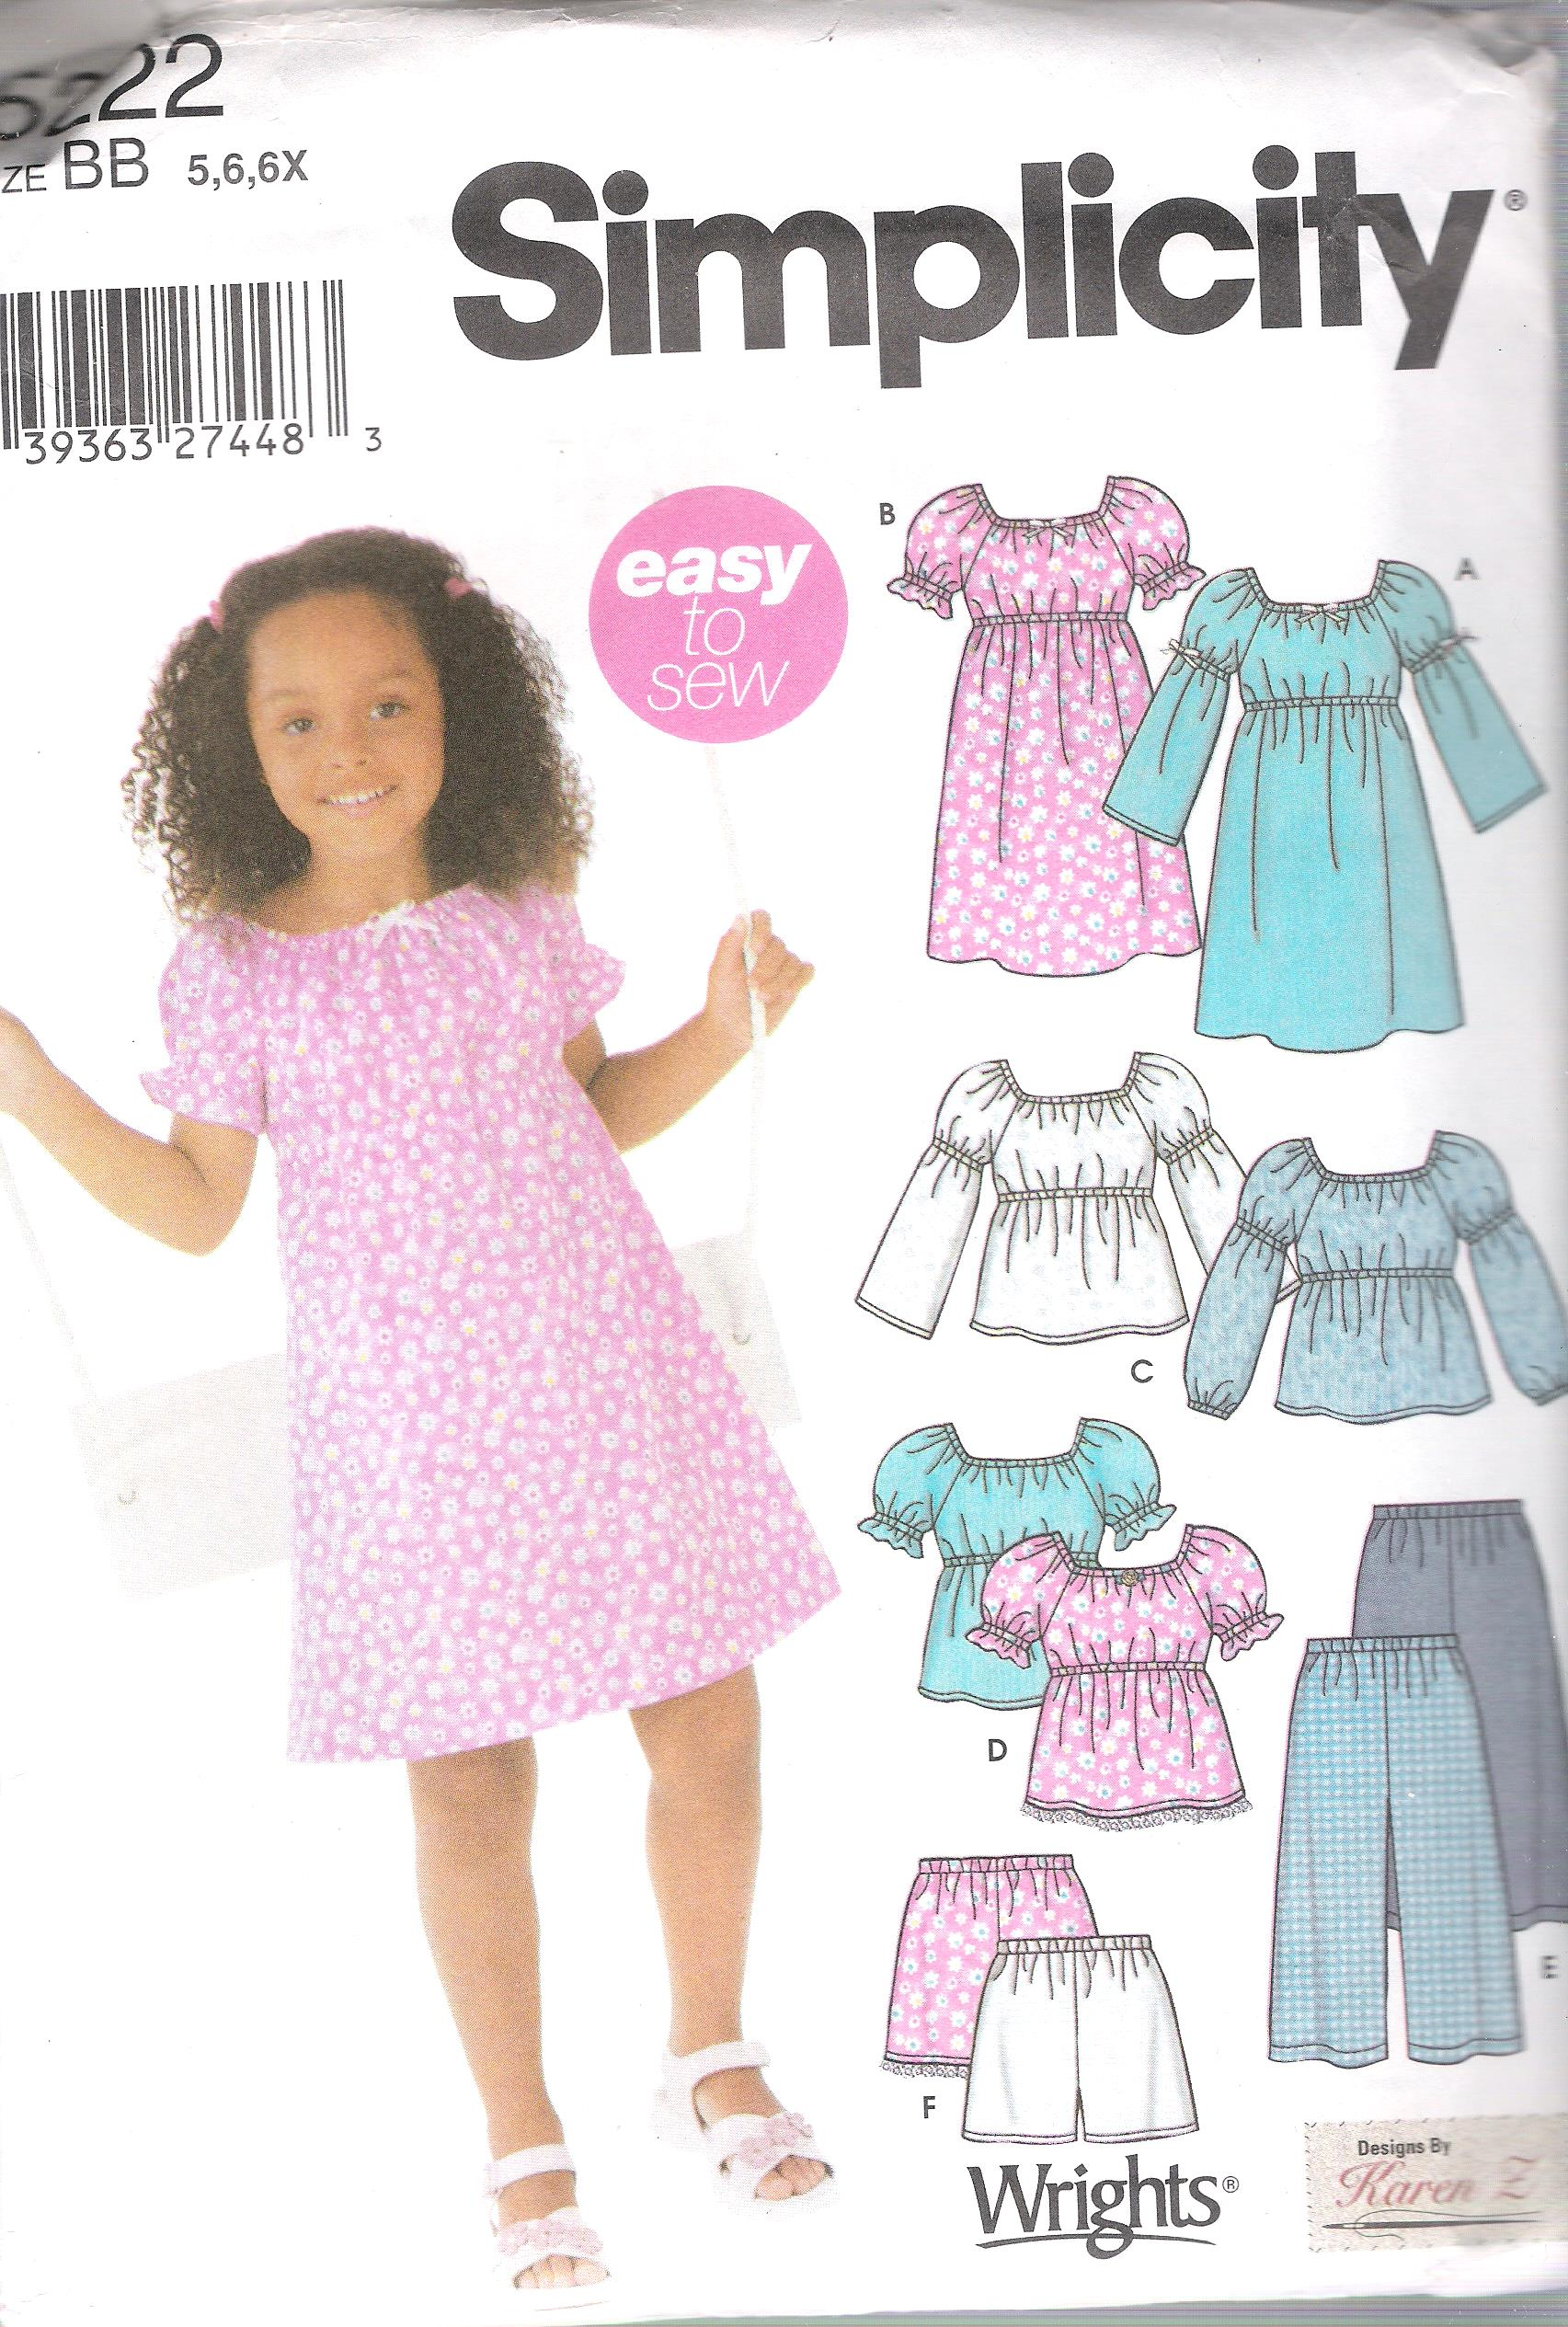 5222 Simplicity Girls Dress Top Shorts Pants Size 5 to 6X UNCUT